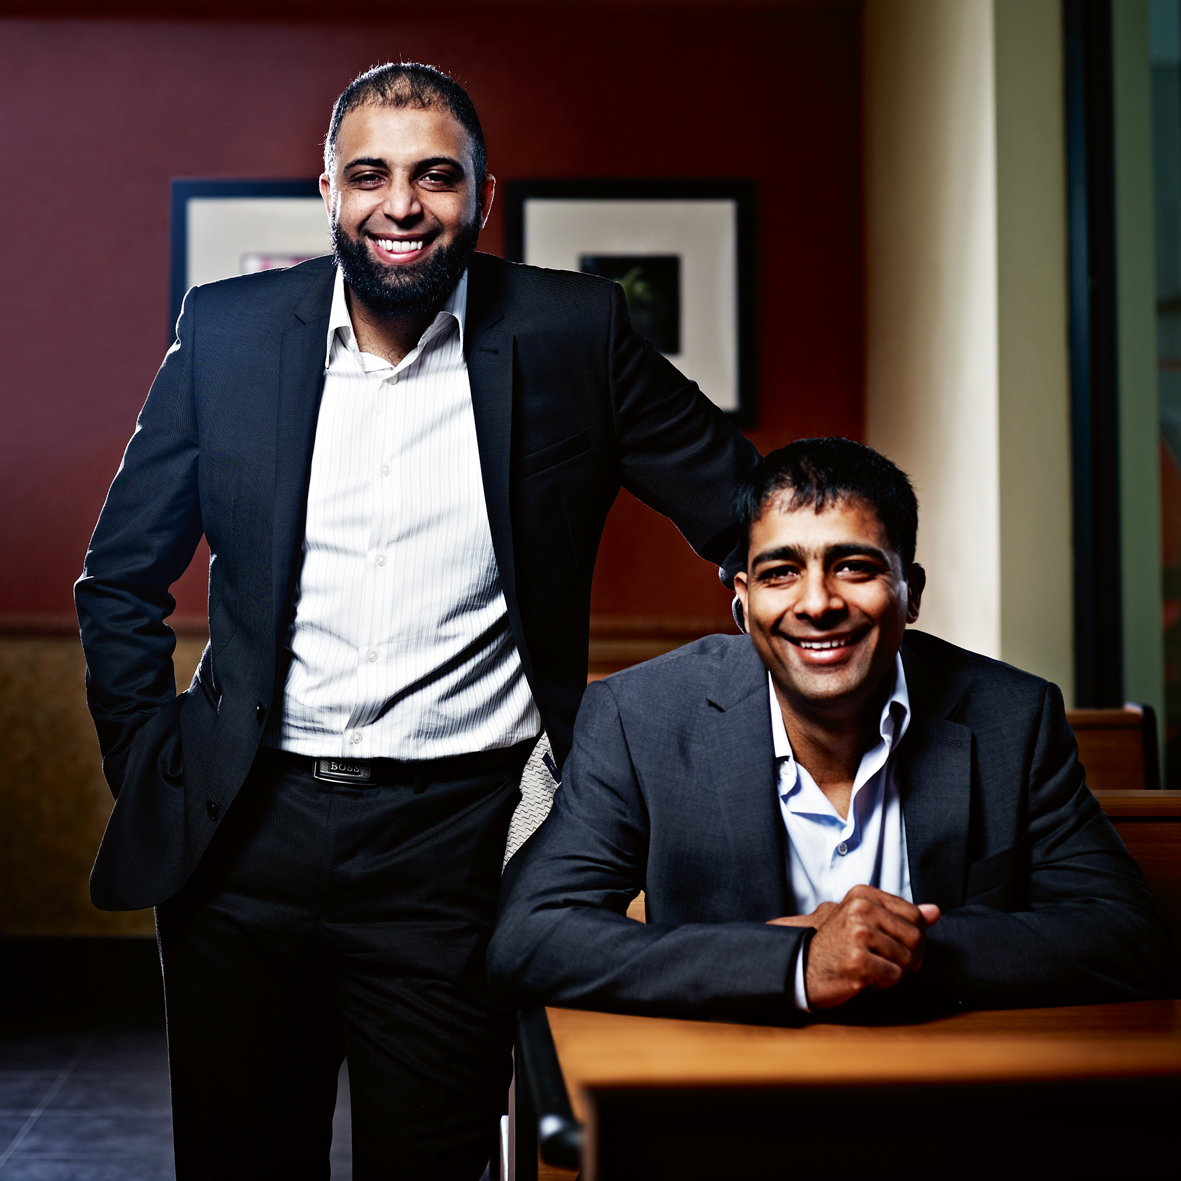 Band of brothers: Why sibling-run firms work